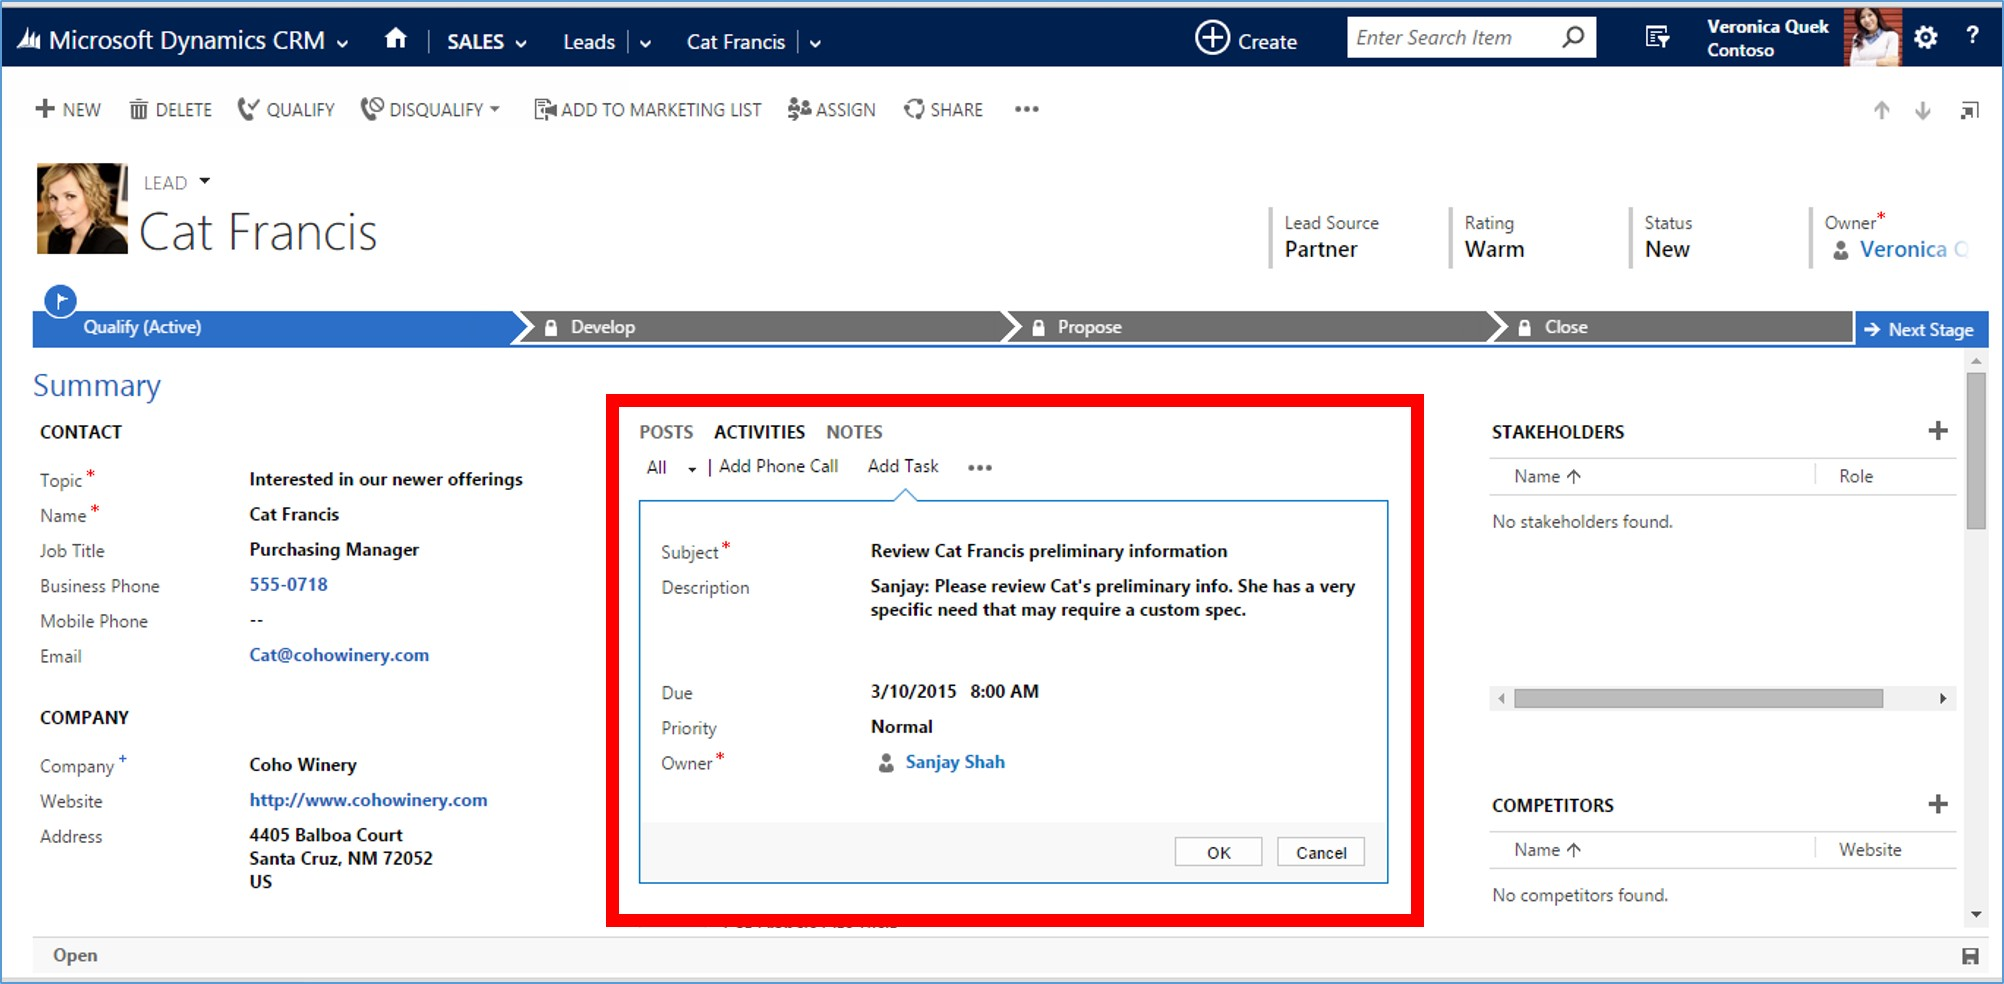 Microsoft Dynamics CRM 2015 Activity Records part 2 image8